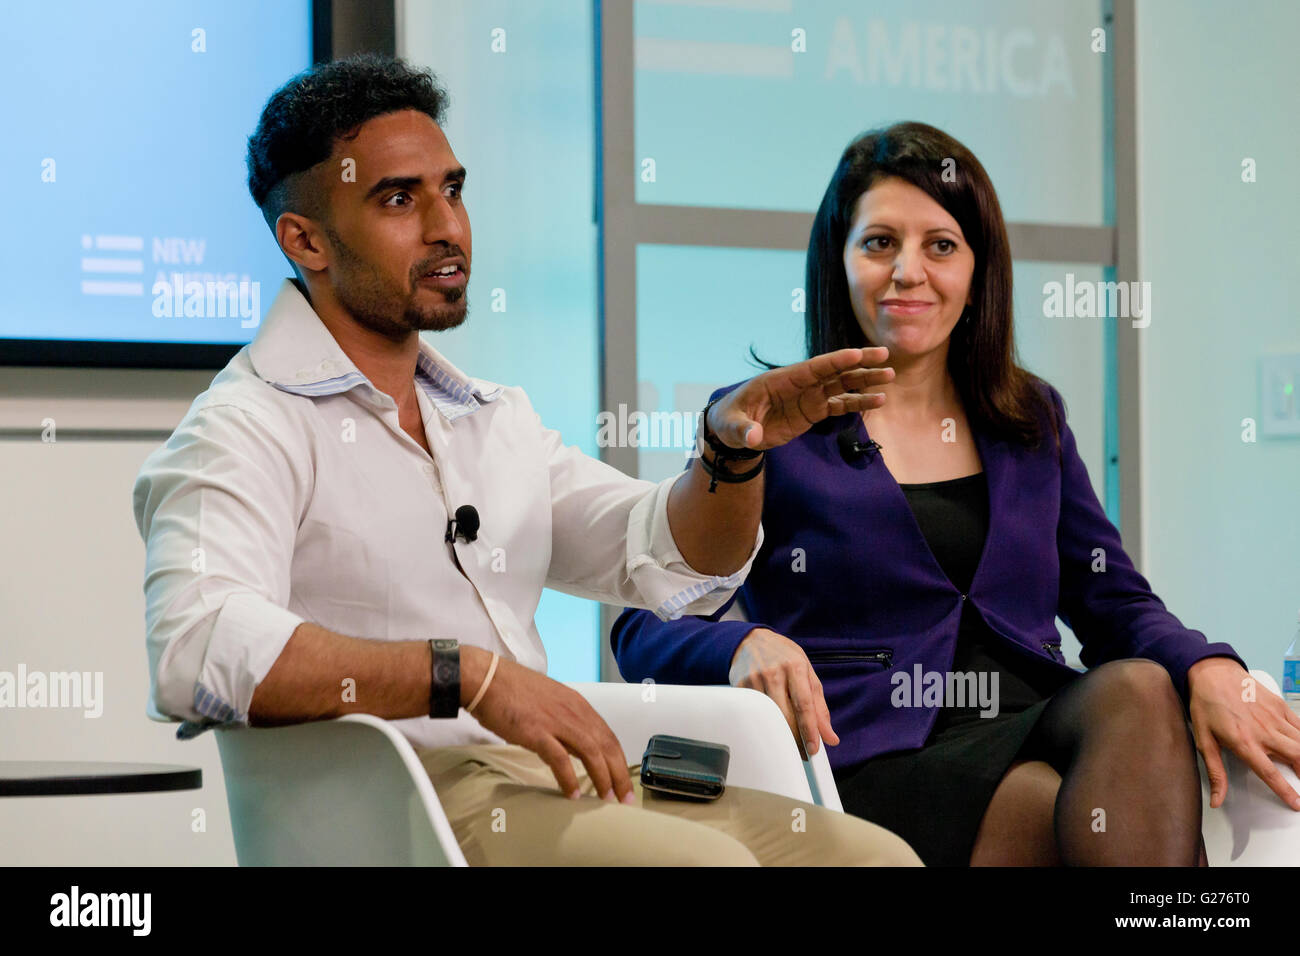 May 03, 2016 - Ahmed Abdellahy, former Muslim extremist speaking at New America - Washington, DC USA - Stock Image